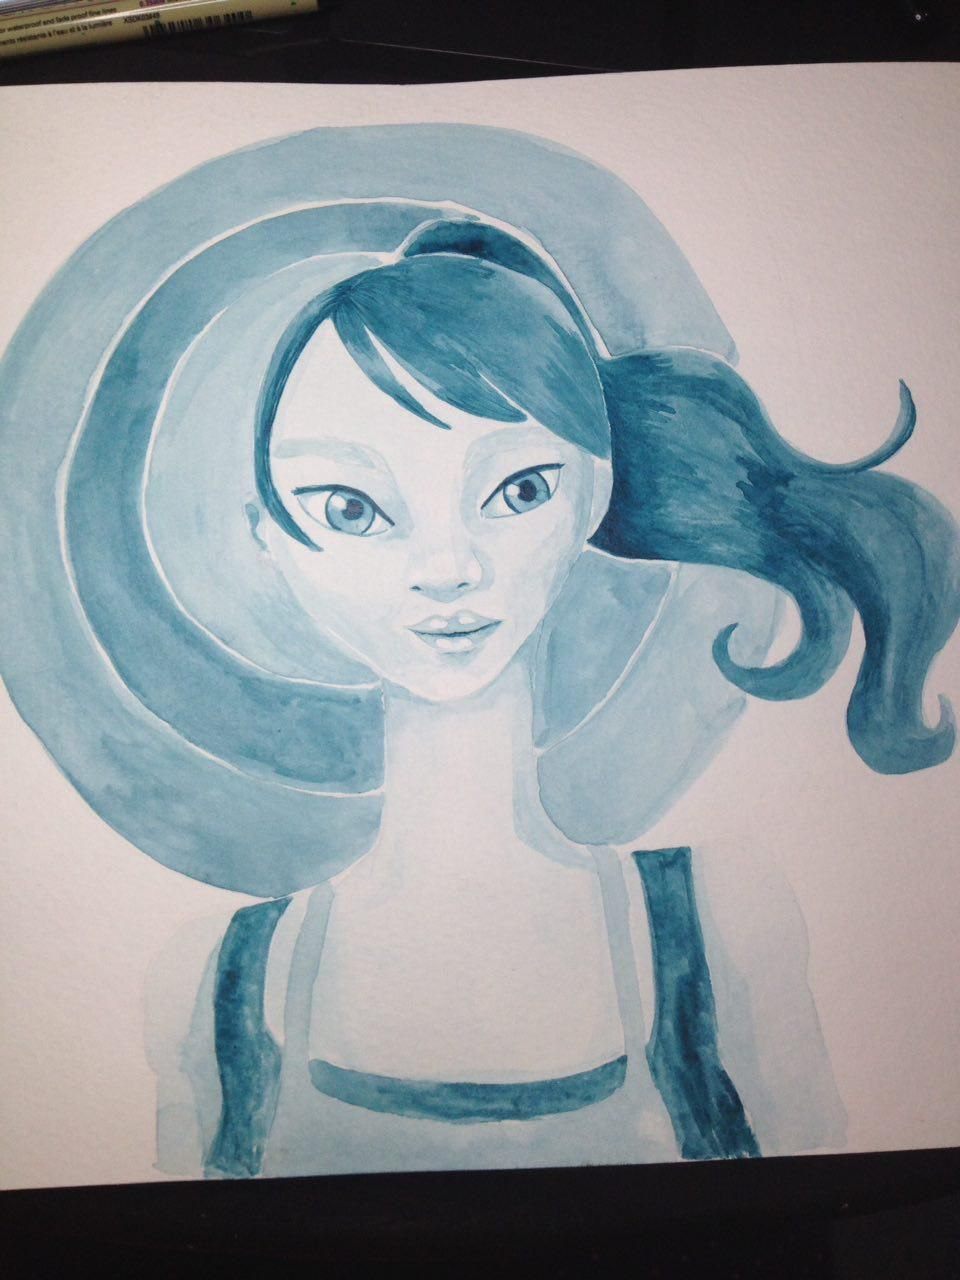 Monochrome girl, Jellyfish and Galaxy hair  - image 1 - student project